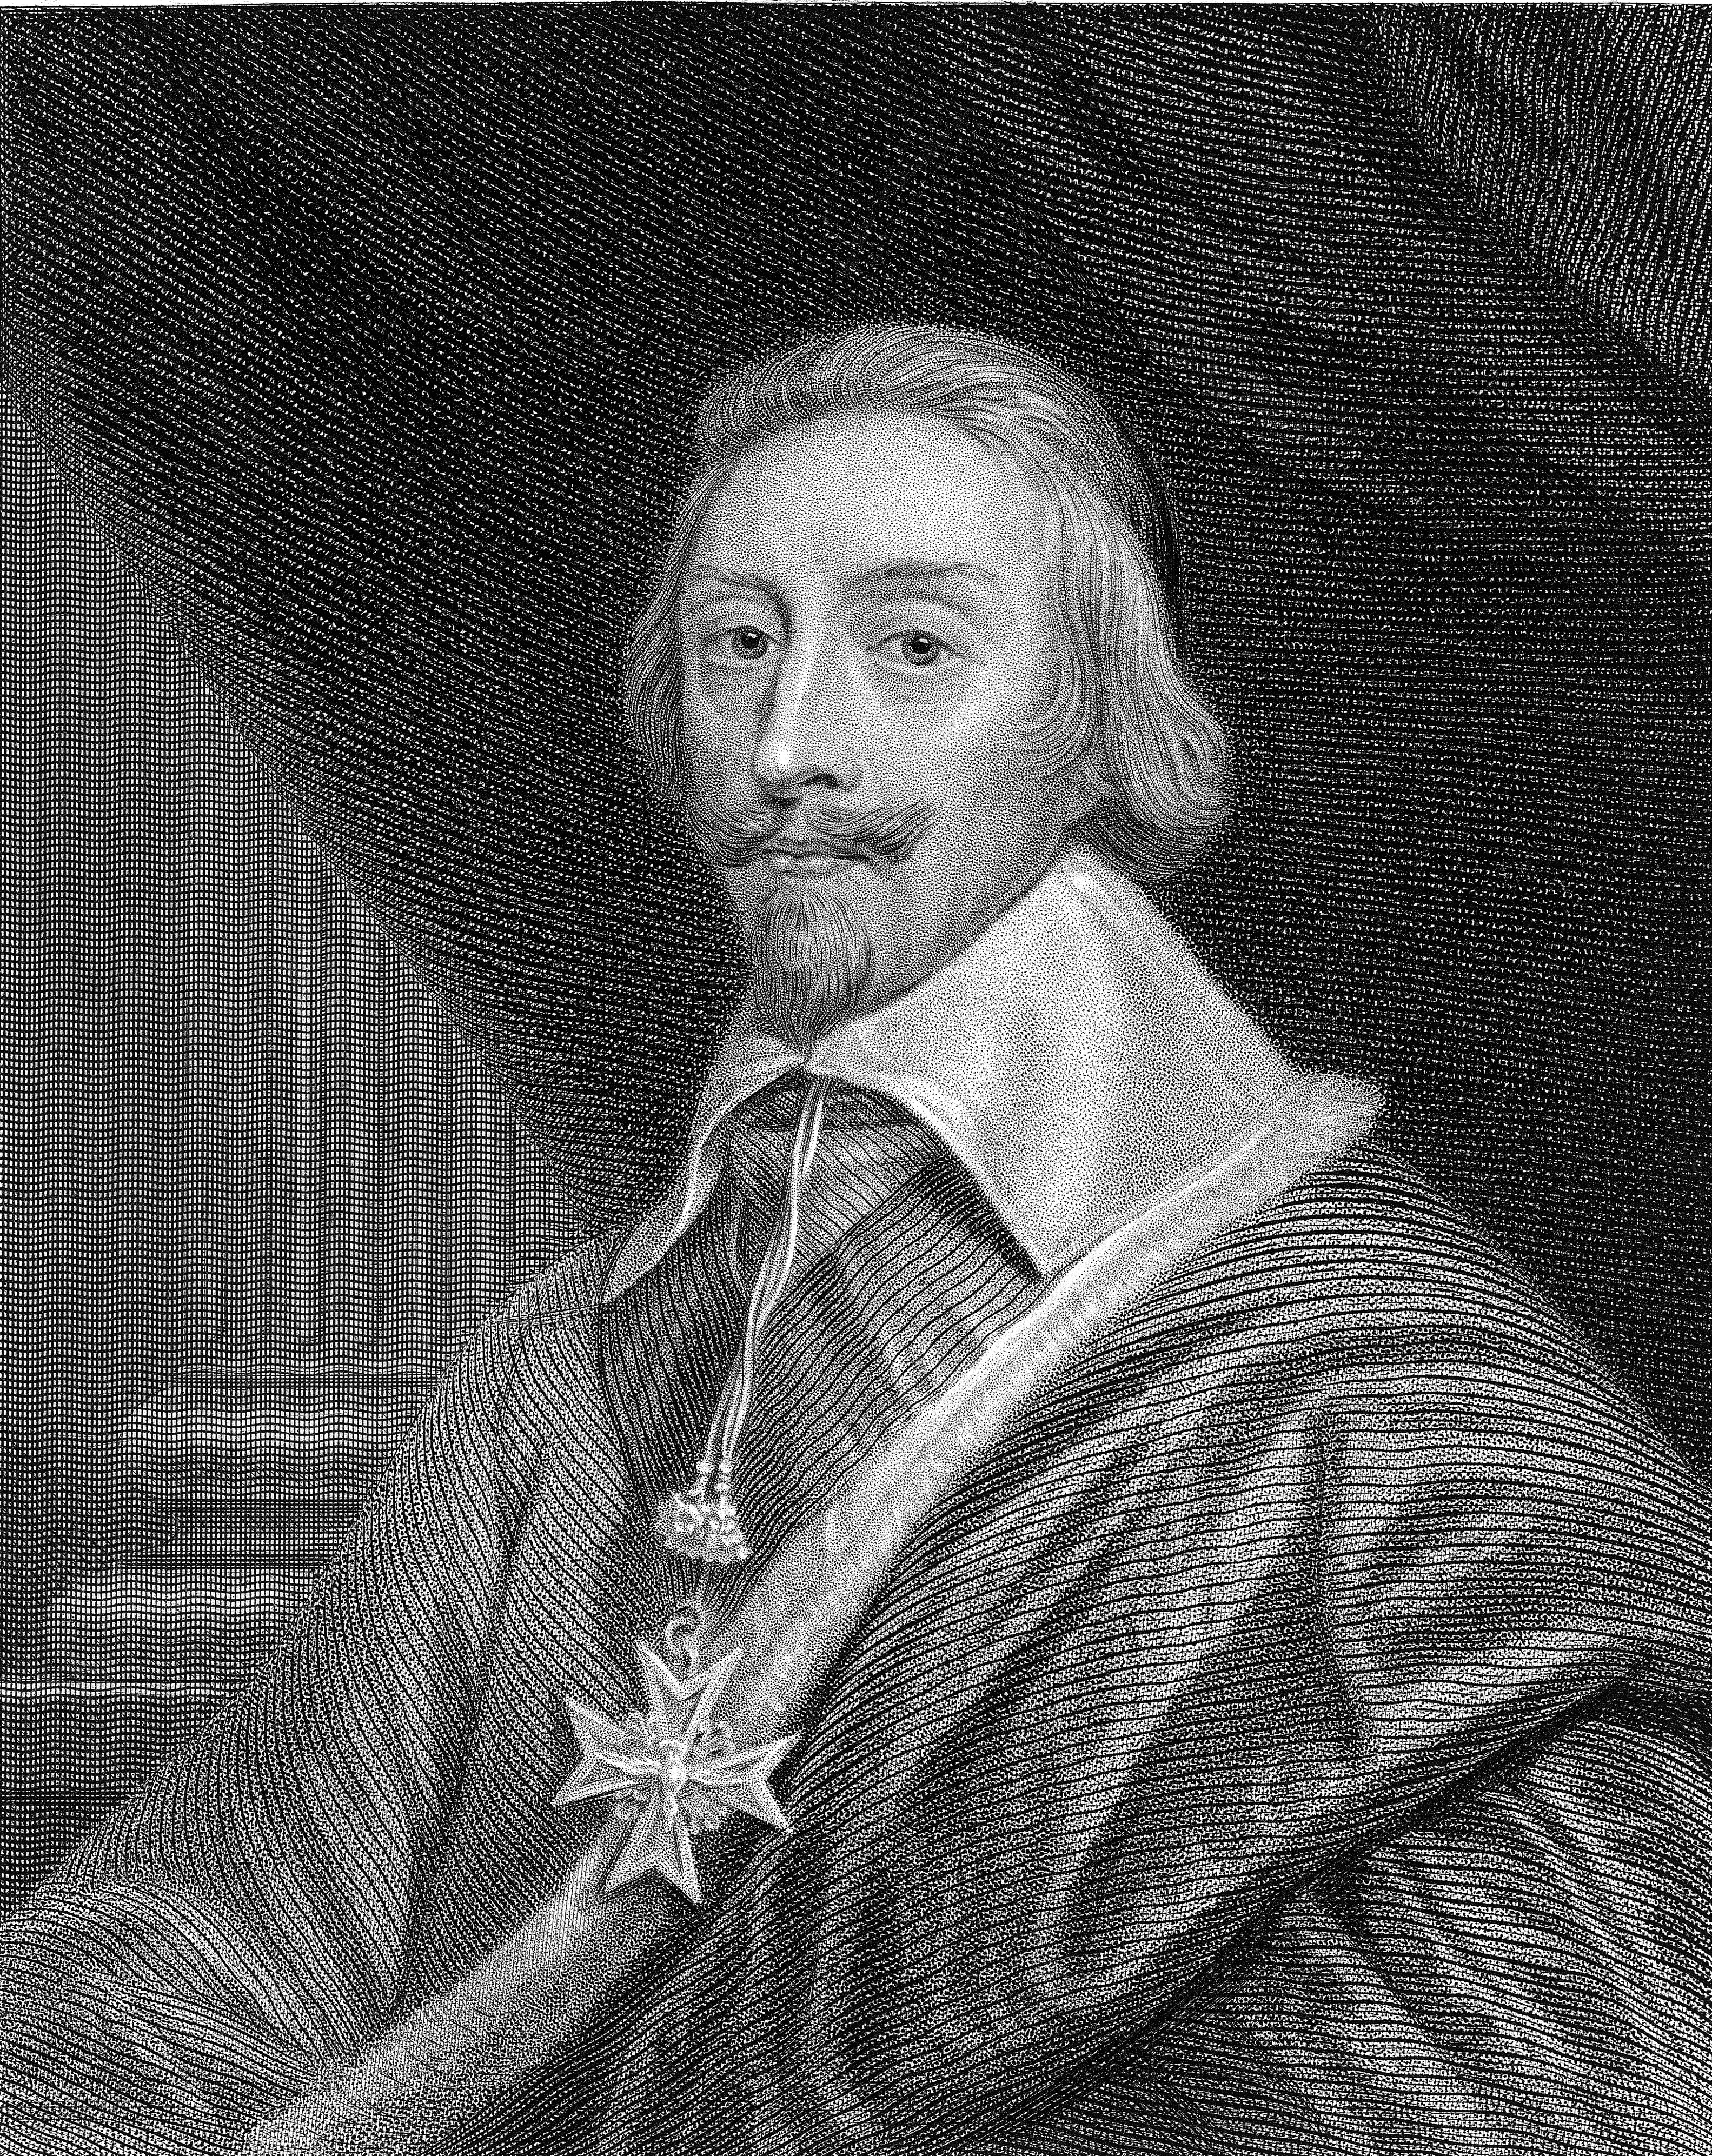 biography of richelieu Learn more about anne of austria, including her power struggles with cardinal de richelieu for rule of france, at biographycom.